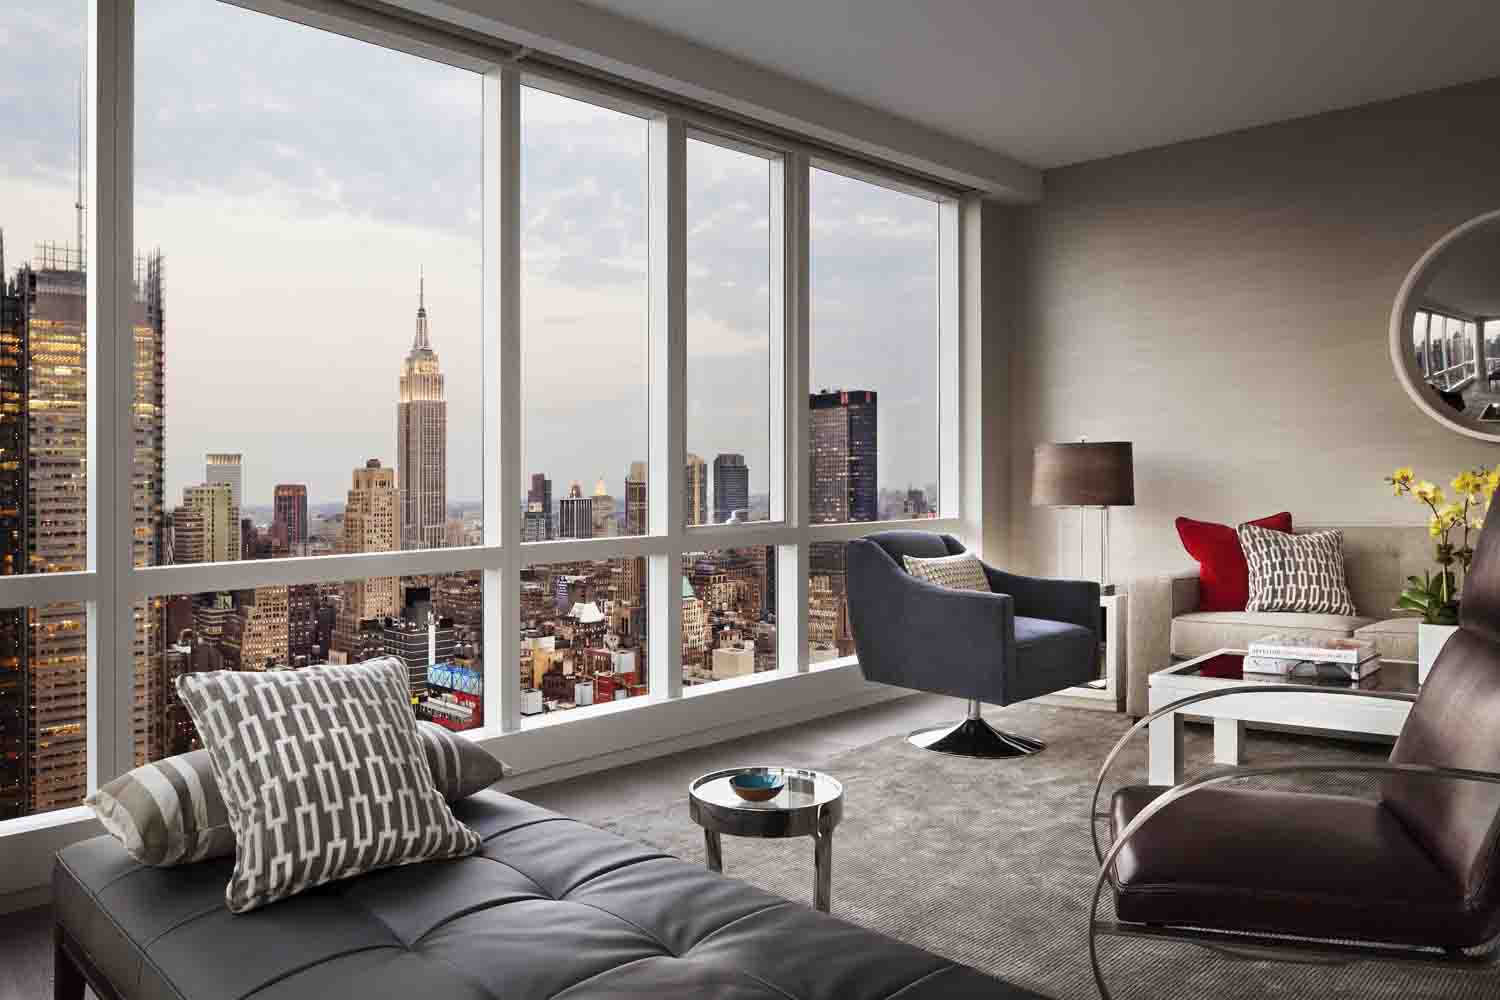 New york city luxury rental blog archives for july 2012 for New york city rental